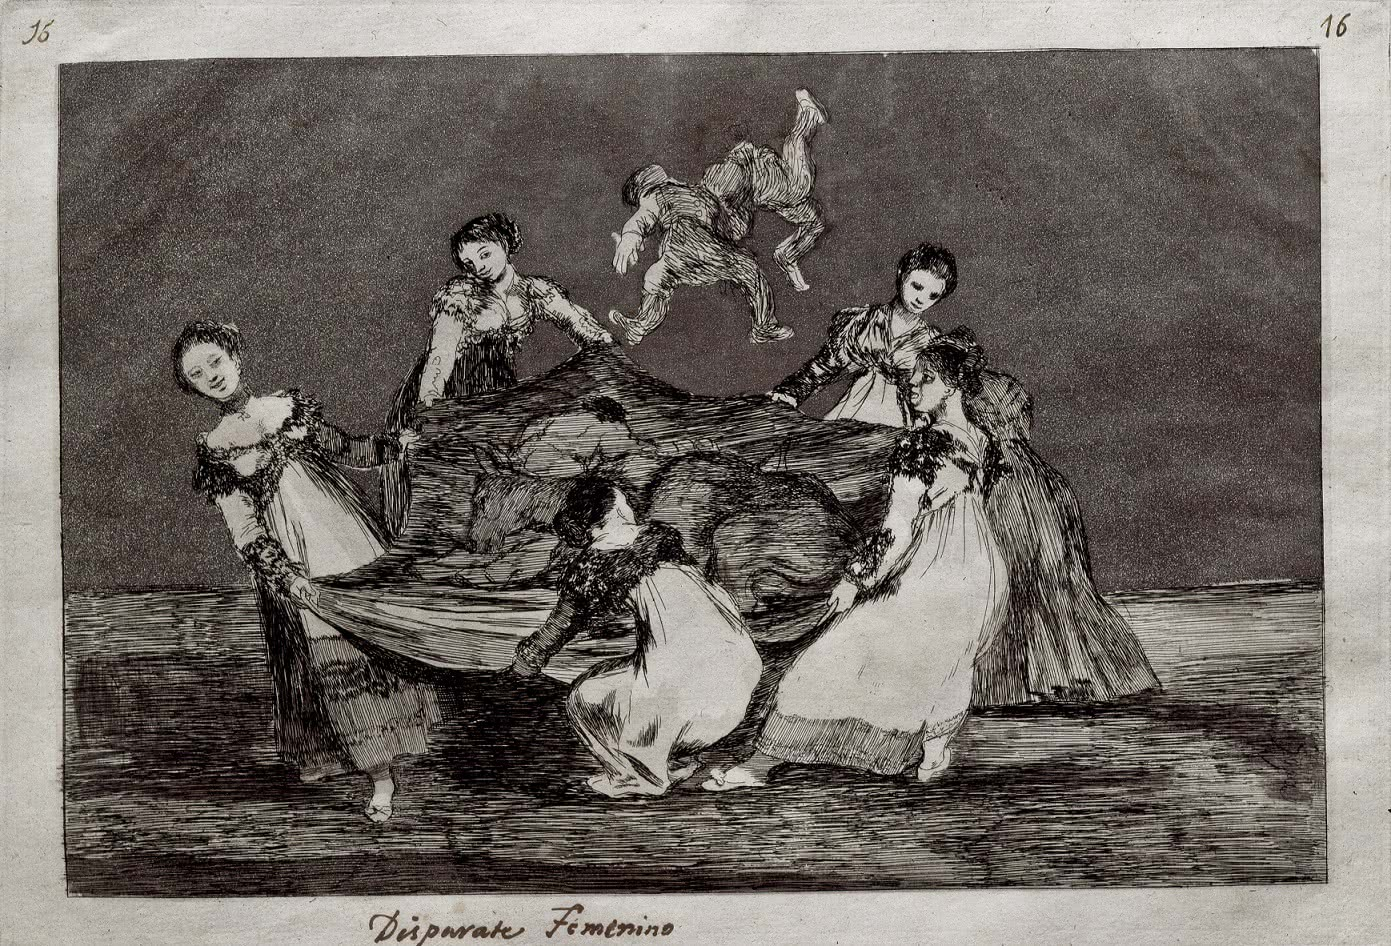 Francisco de Goya y Lucientes. Disparate femenino, 1815-1816.